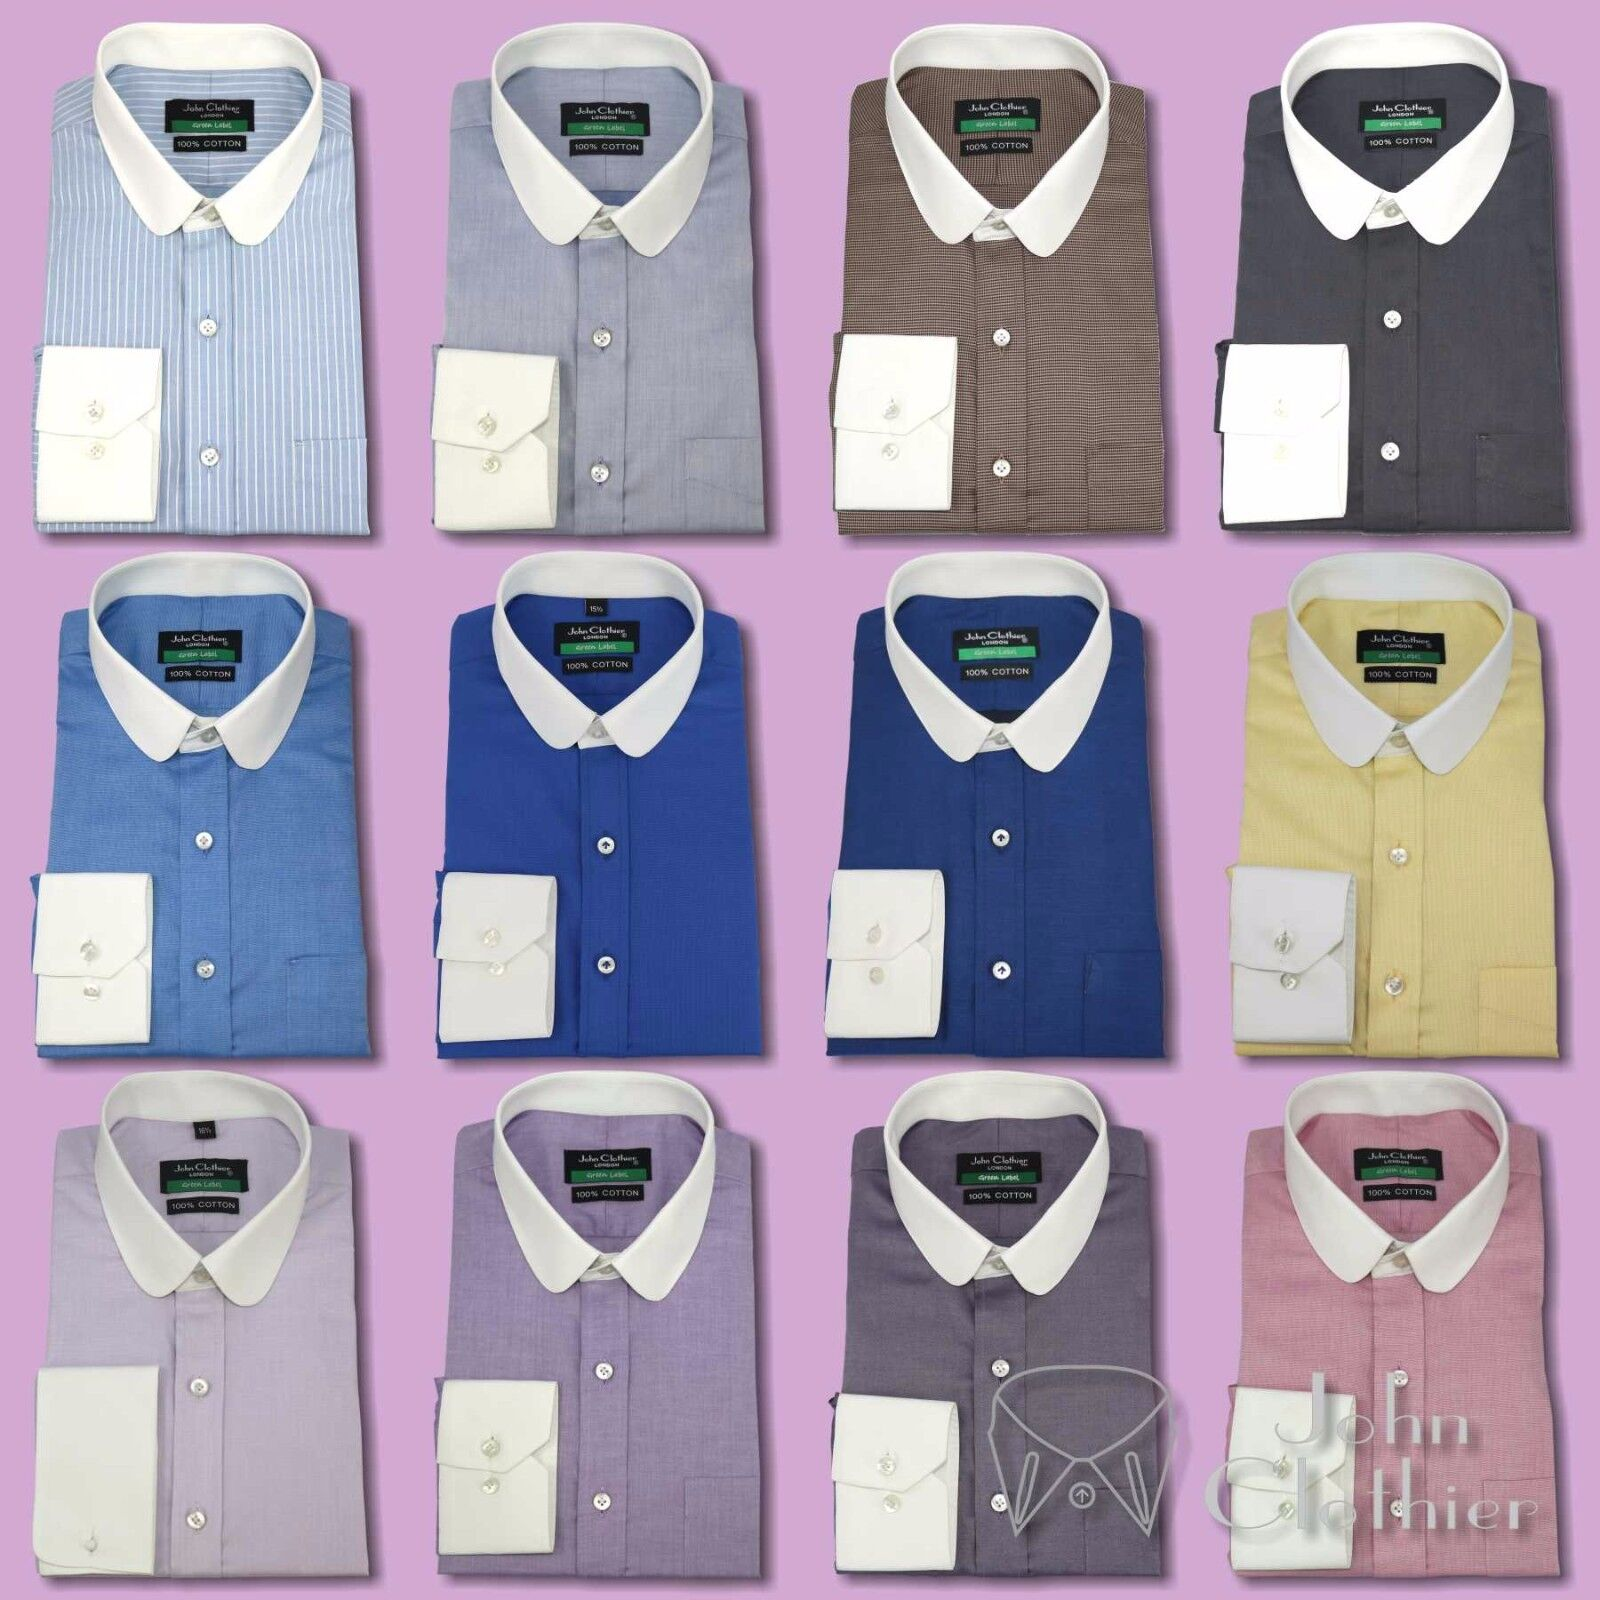 Penny collar shirt Banker style for Men Round Club collar shirt Soft Giza Cotton